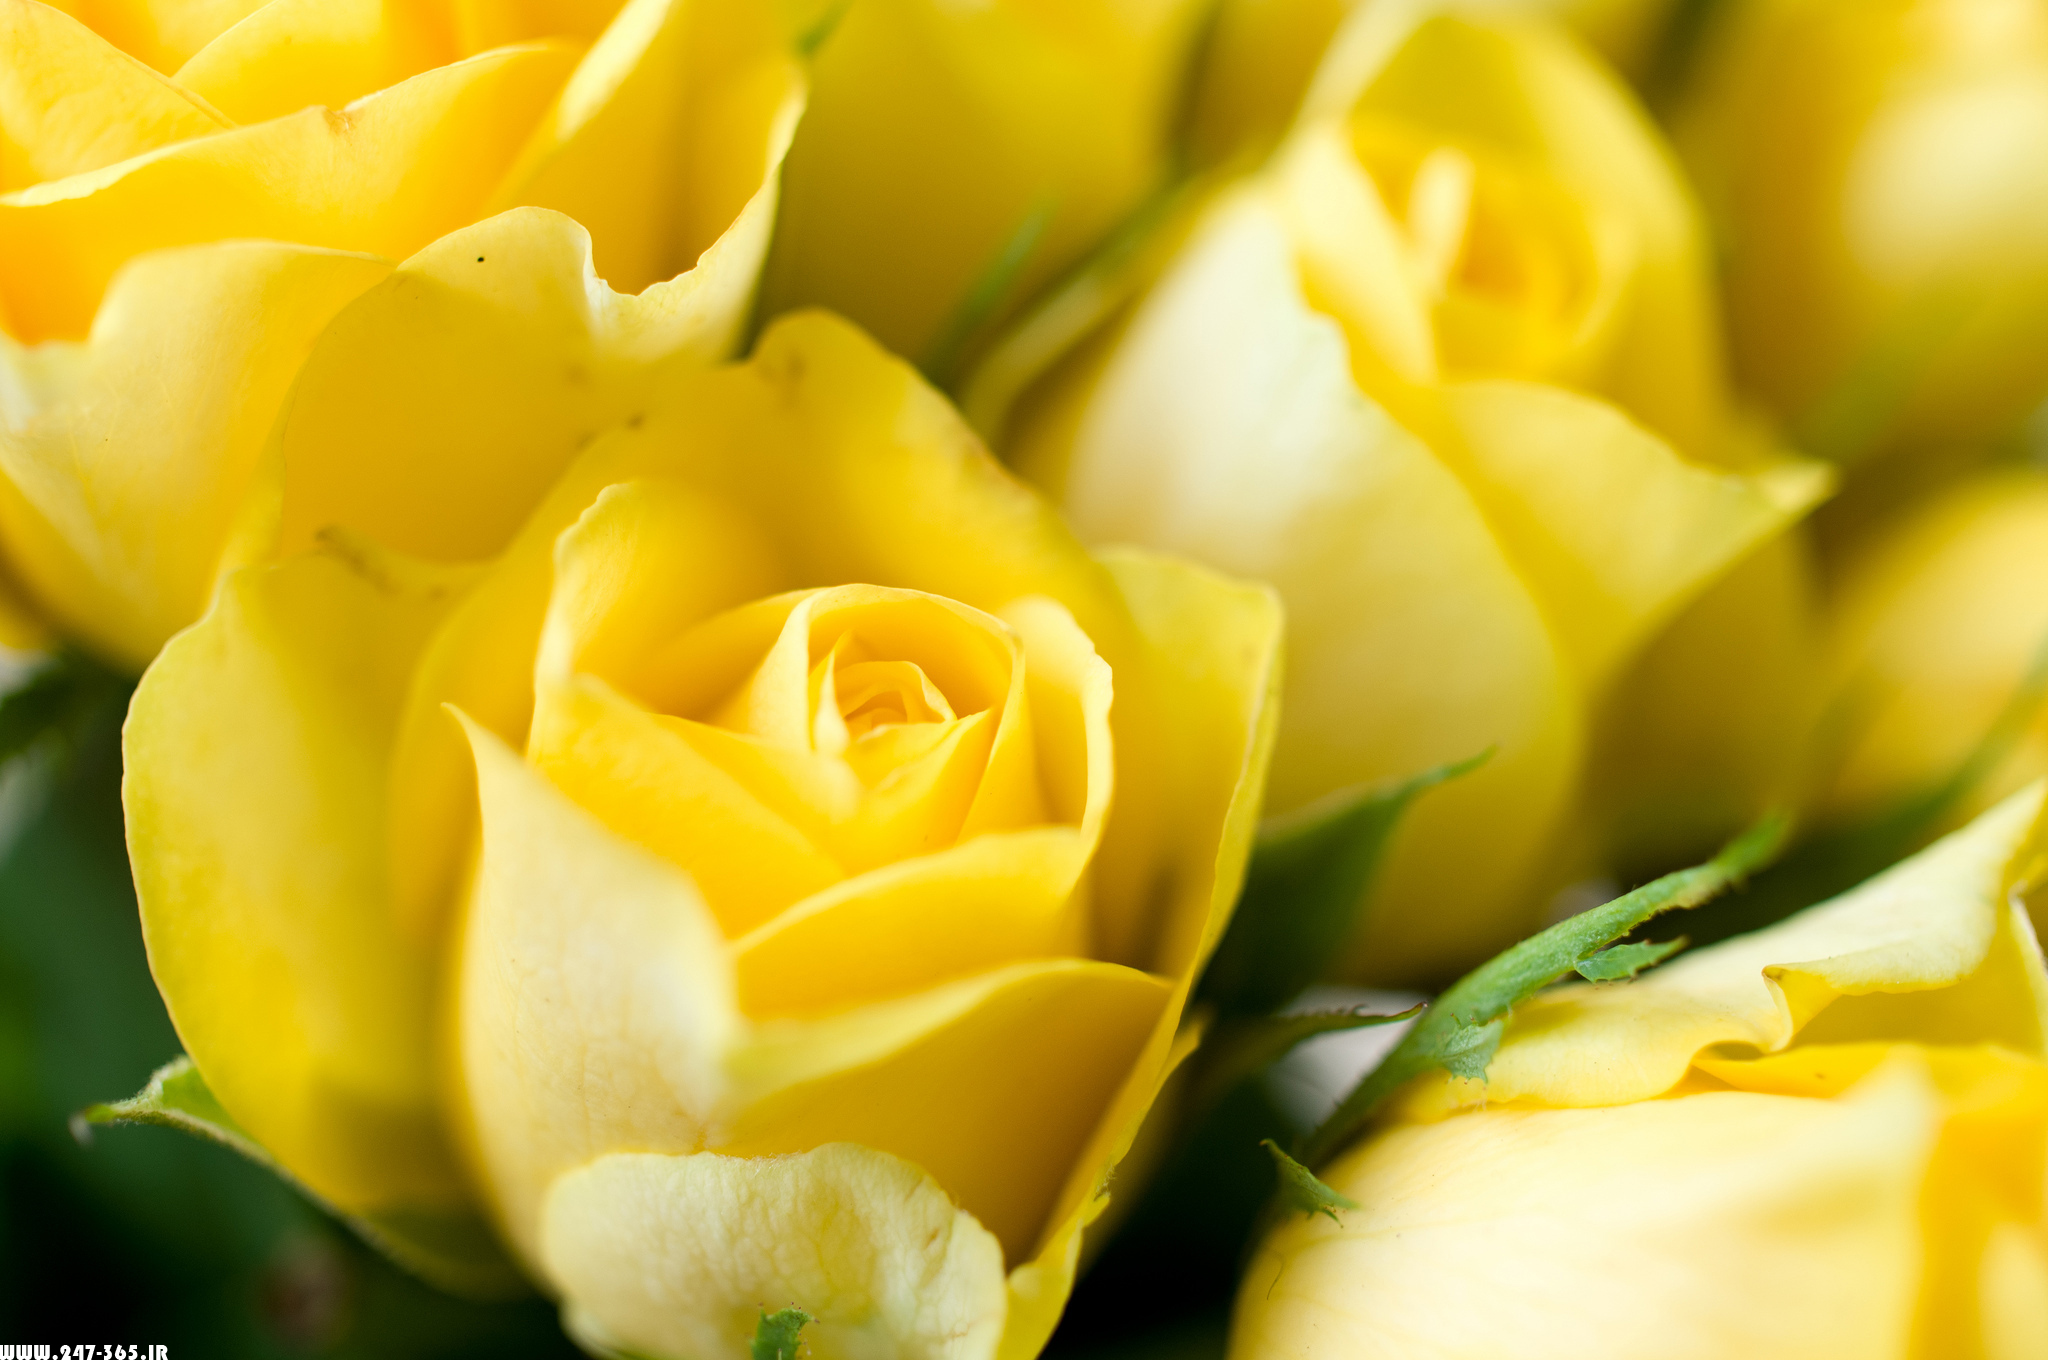 http://dl.247-365.ir/pic/gol/yellow_rose_1/Yellow_Rose_1_01.jpg